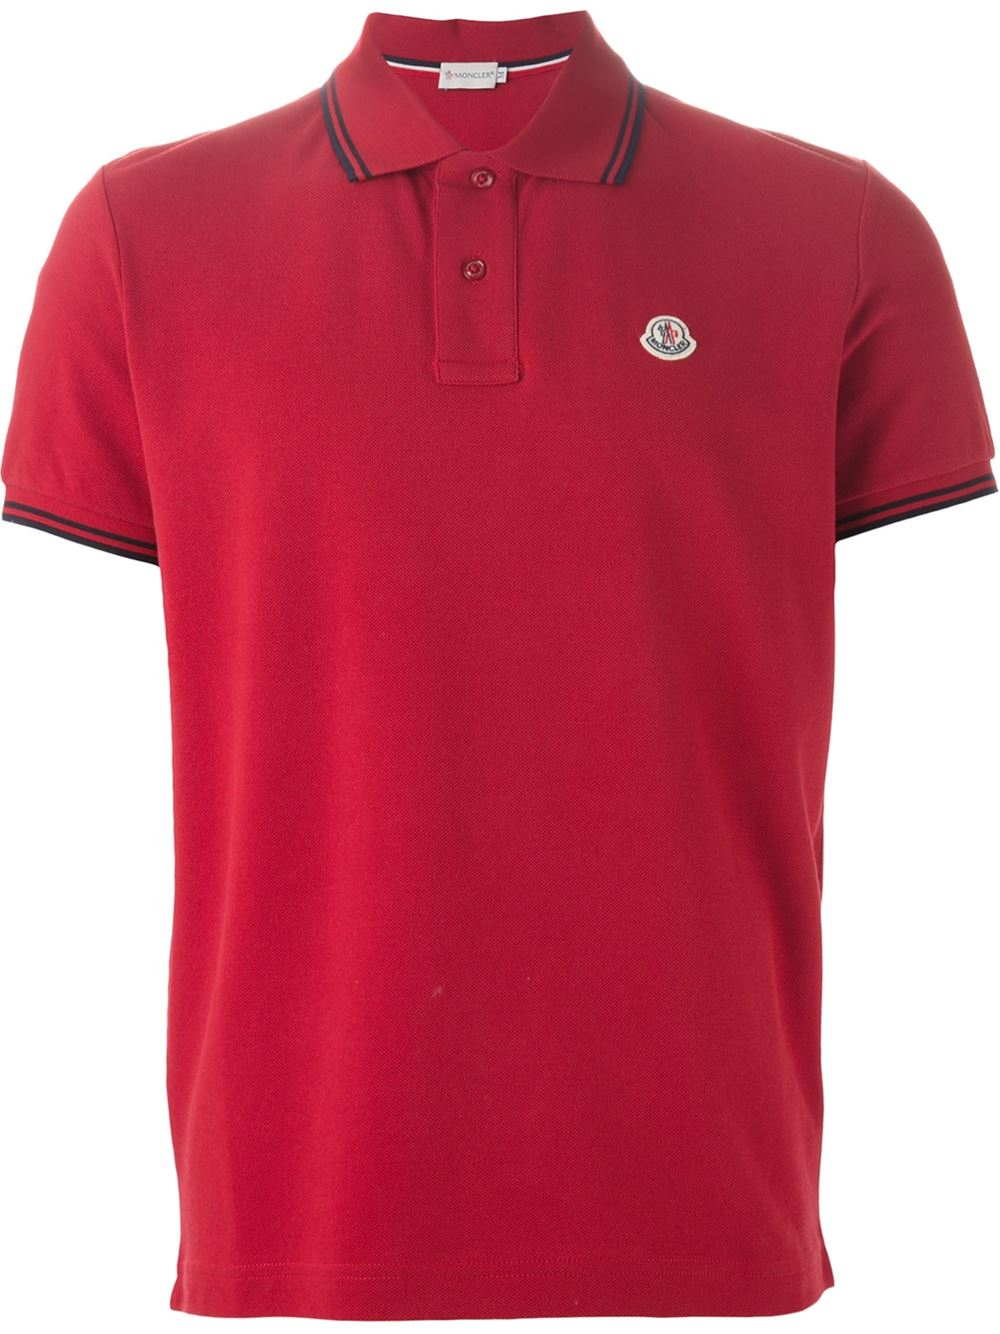 Moncler Classic Polo Shirt In Red For Men Lyst